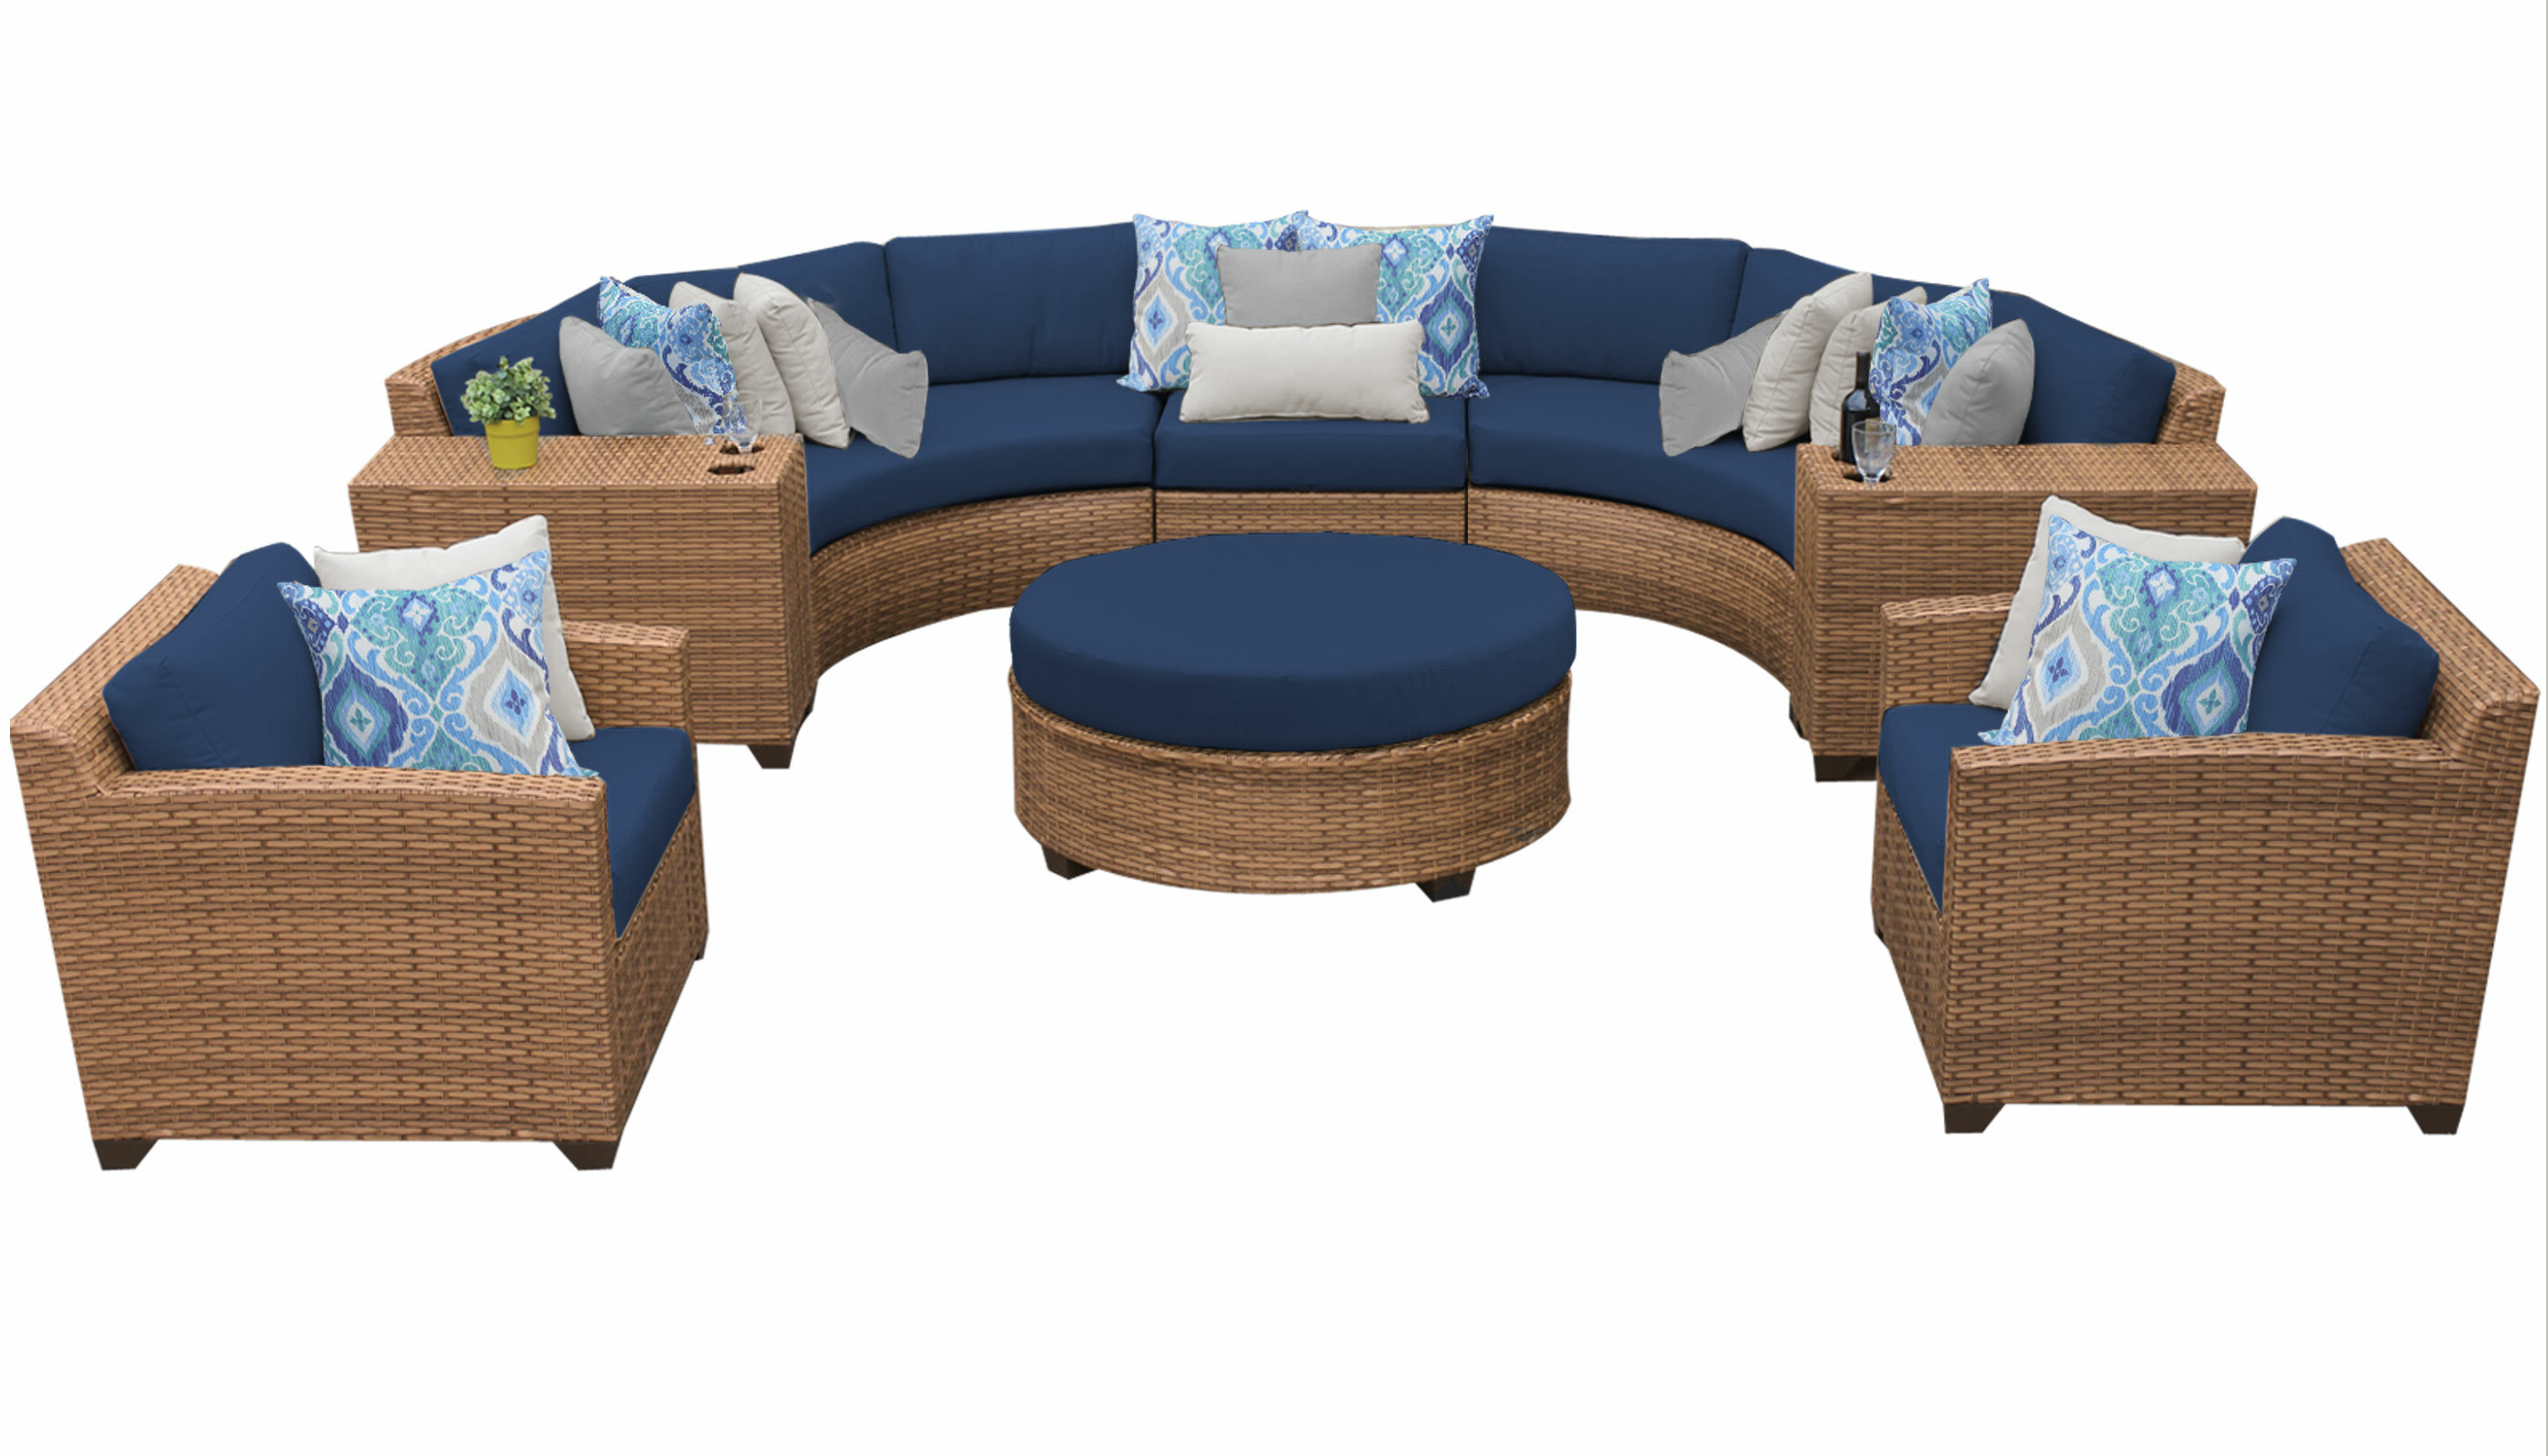 2020 Waterbury Curved Armless Sofa With Cushions Within Waterbury 8 Piece Sectional Seating Group With Cushions (View 3 of 20)